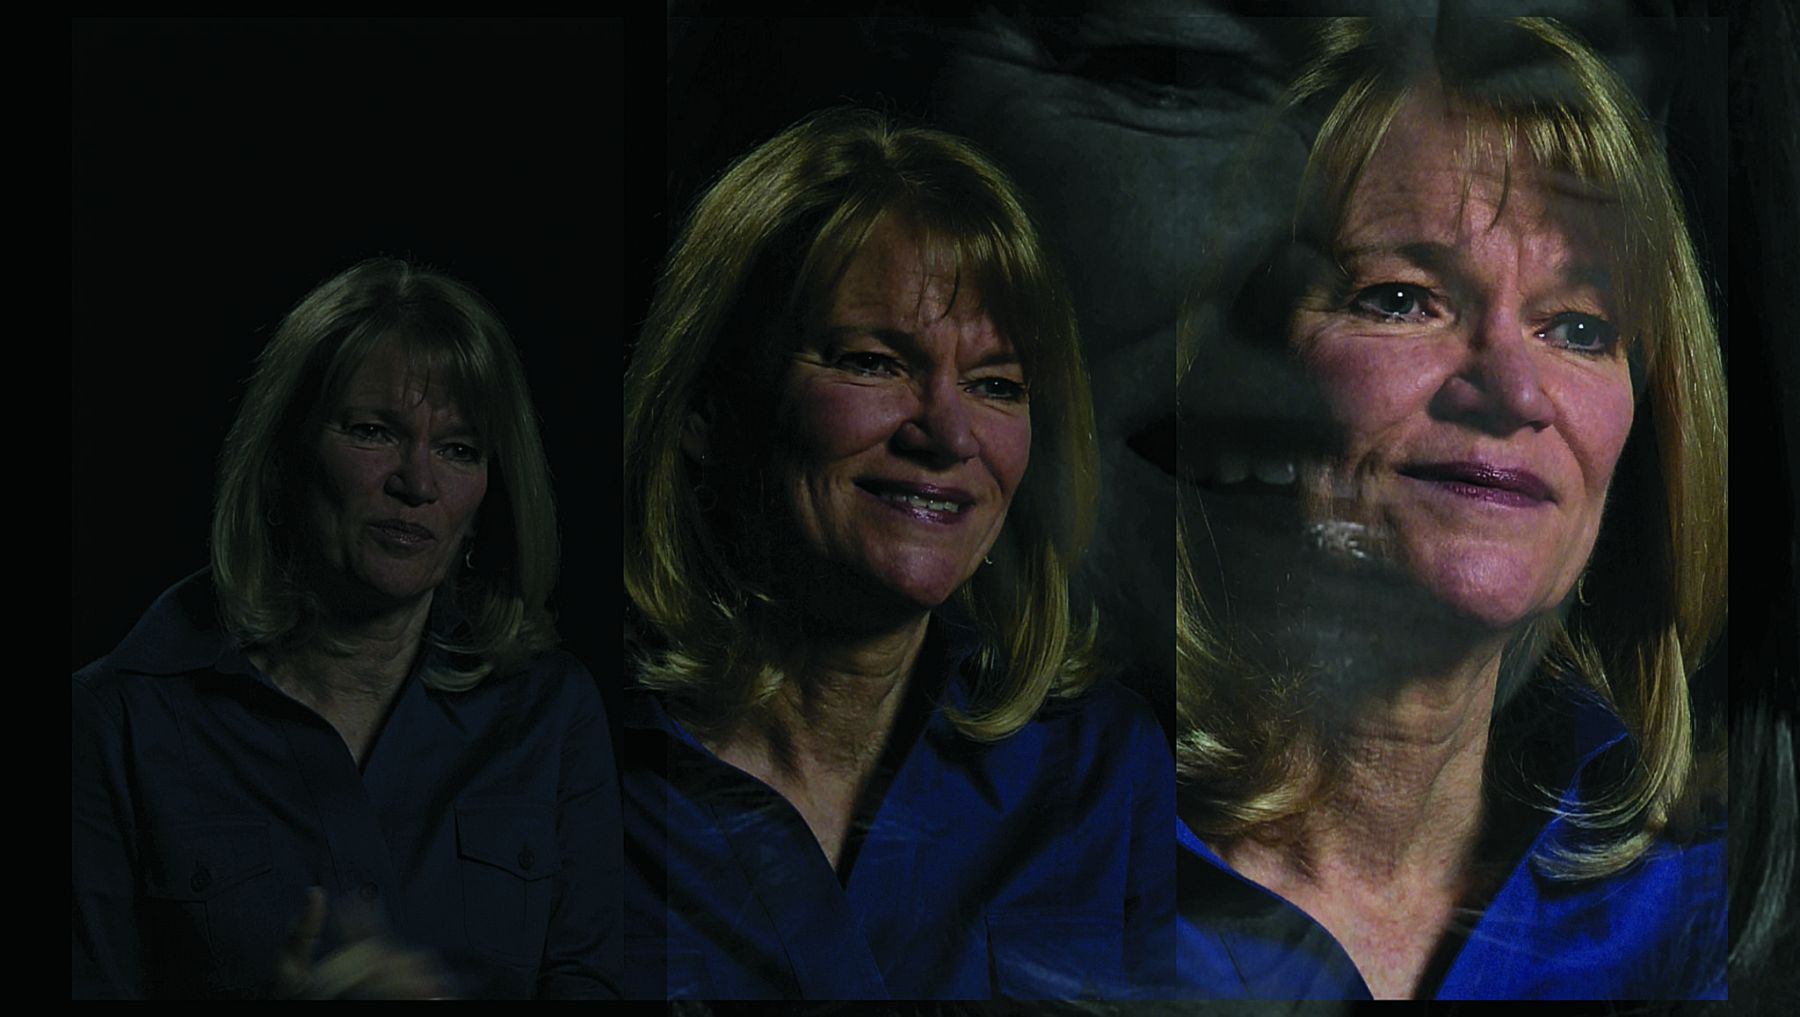 Lincoln Schatz The Network (Martha Raddatz), face-mounted pigment print, 16.75 x 30 inches